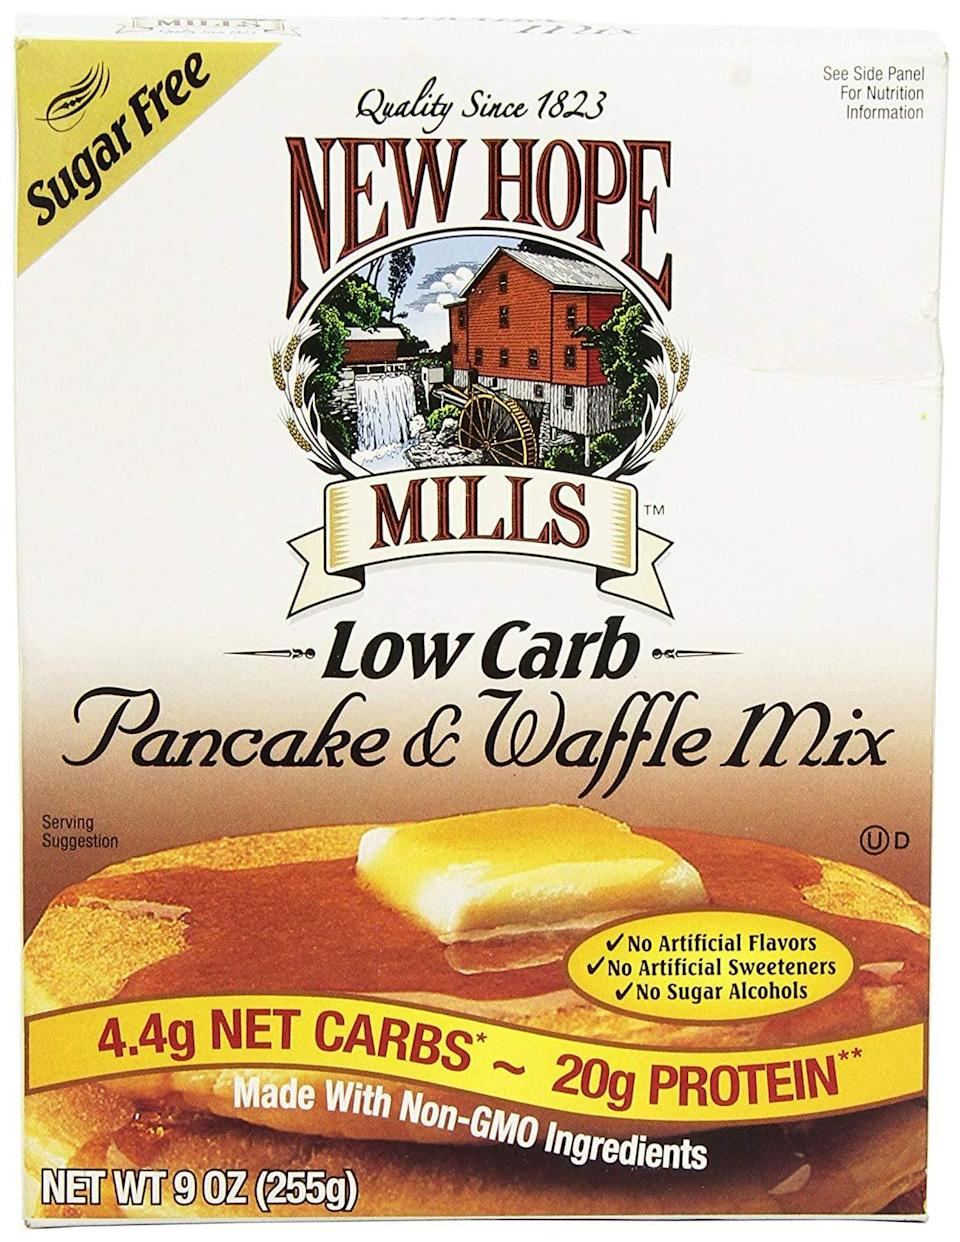 """<p>Packed with protein, this <a href=""""https://www.popsugar.com/buy/New%20Hope%20Mills%20Sugar%20Free%20Pancake%20%26amp%3B%20Waffle%20Mix-436268?p_name=New%20Hope%20Mills%20Sugar%20Free%20Pancake%20%26amp%3B%20Waffle%20Mix&retailer=amazon.com&price=10&evar1=fit%3Aus&evar9=46042877&evar98=https%3A%2F%2Fwww.popsugar.com%2Ffitness%2Fphoto-gallery%2F46042877%2Fimage%2F46043281%2FNew-Hope-Mills-Sugar-Free-Pancake-Waffle-Mix&list1=shopping%2Camazon%2Cbreakfast%2Cpancakes%2Cbreakfast%20food%2Chealthy%20breakfast%2Cwaffles%2Cprotein%20pancakes%2Clow-carb&prop13=api&pdata=1"""" rel=""""nofollow noopener"""" target=""""_blank"""" data-ylk=""""slk:New Hope Mills Sugar Free Pancake & Waffle Mix"""" class=""""link rapid-noclick-resp"""">New Hope Mills Sugar Free Pancake & Waffle Mix</a> ($10) is an awesome breakfast choice.</p>"""